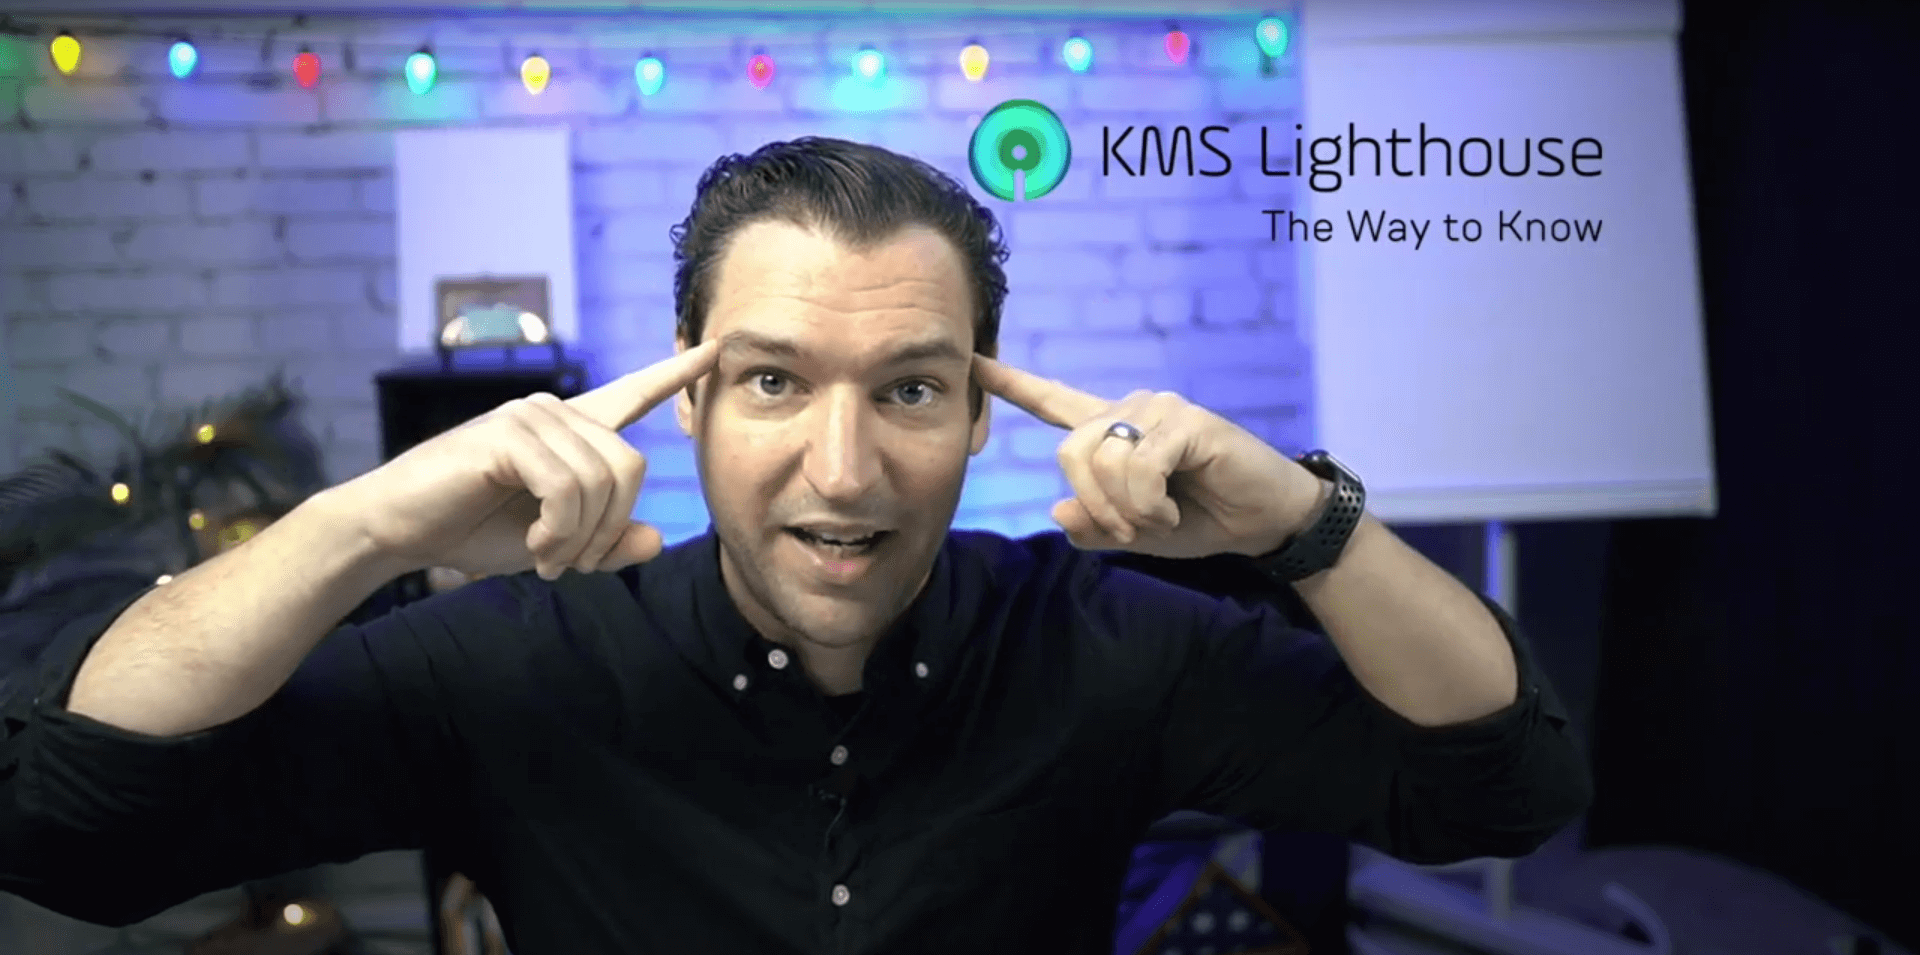 Michael Karl, talented mentalist, joining KMS Lighthouse Annual KM Summit November 11th